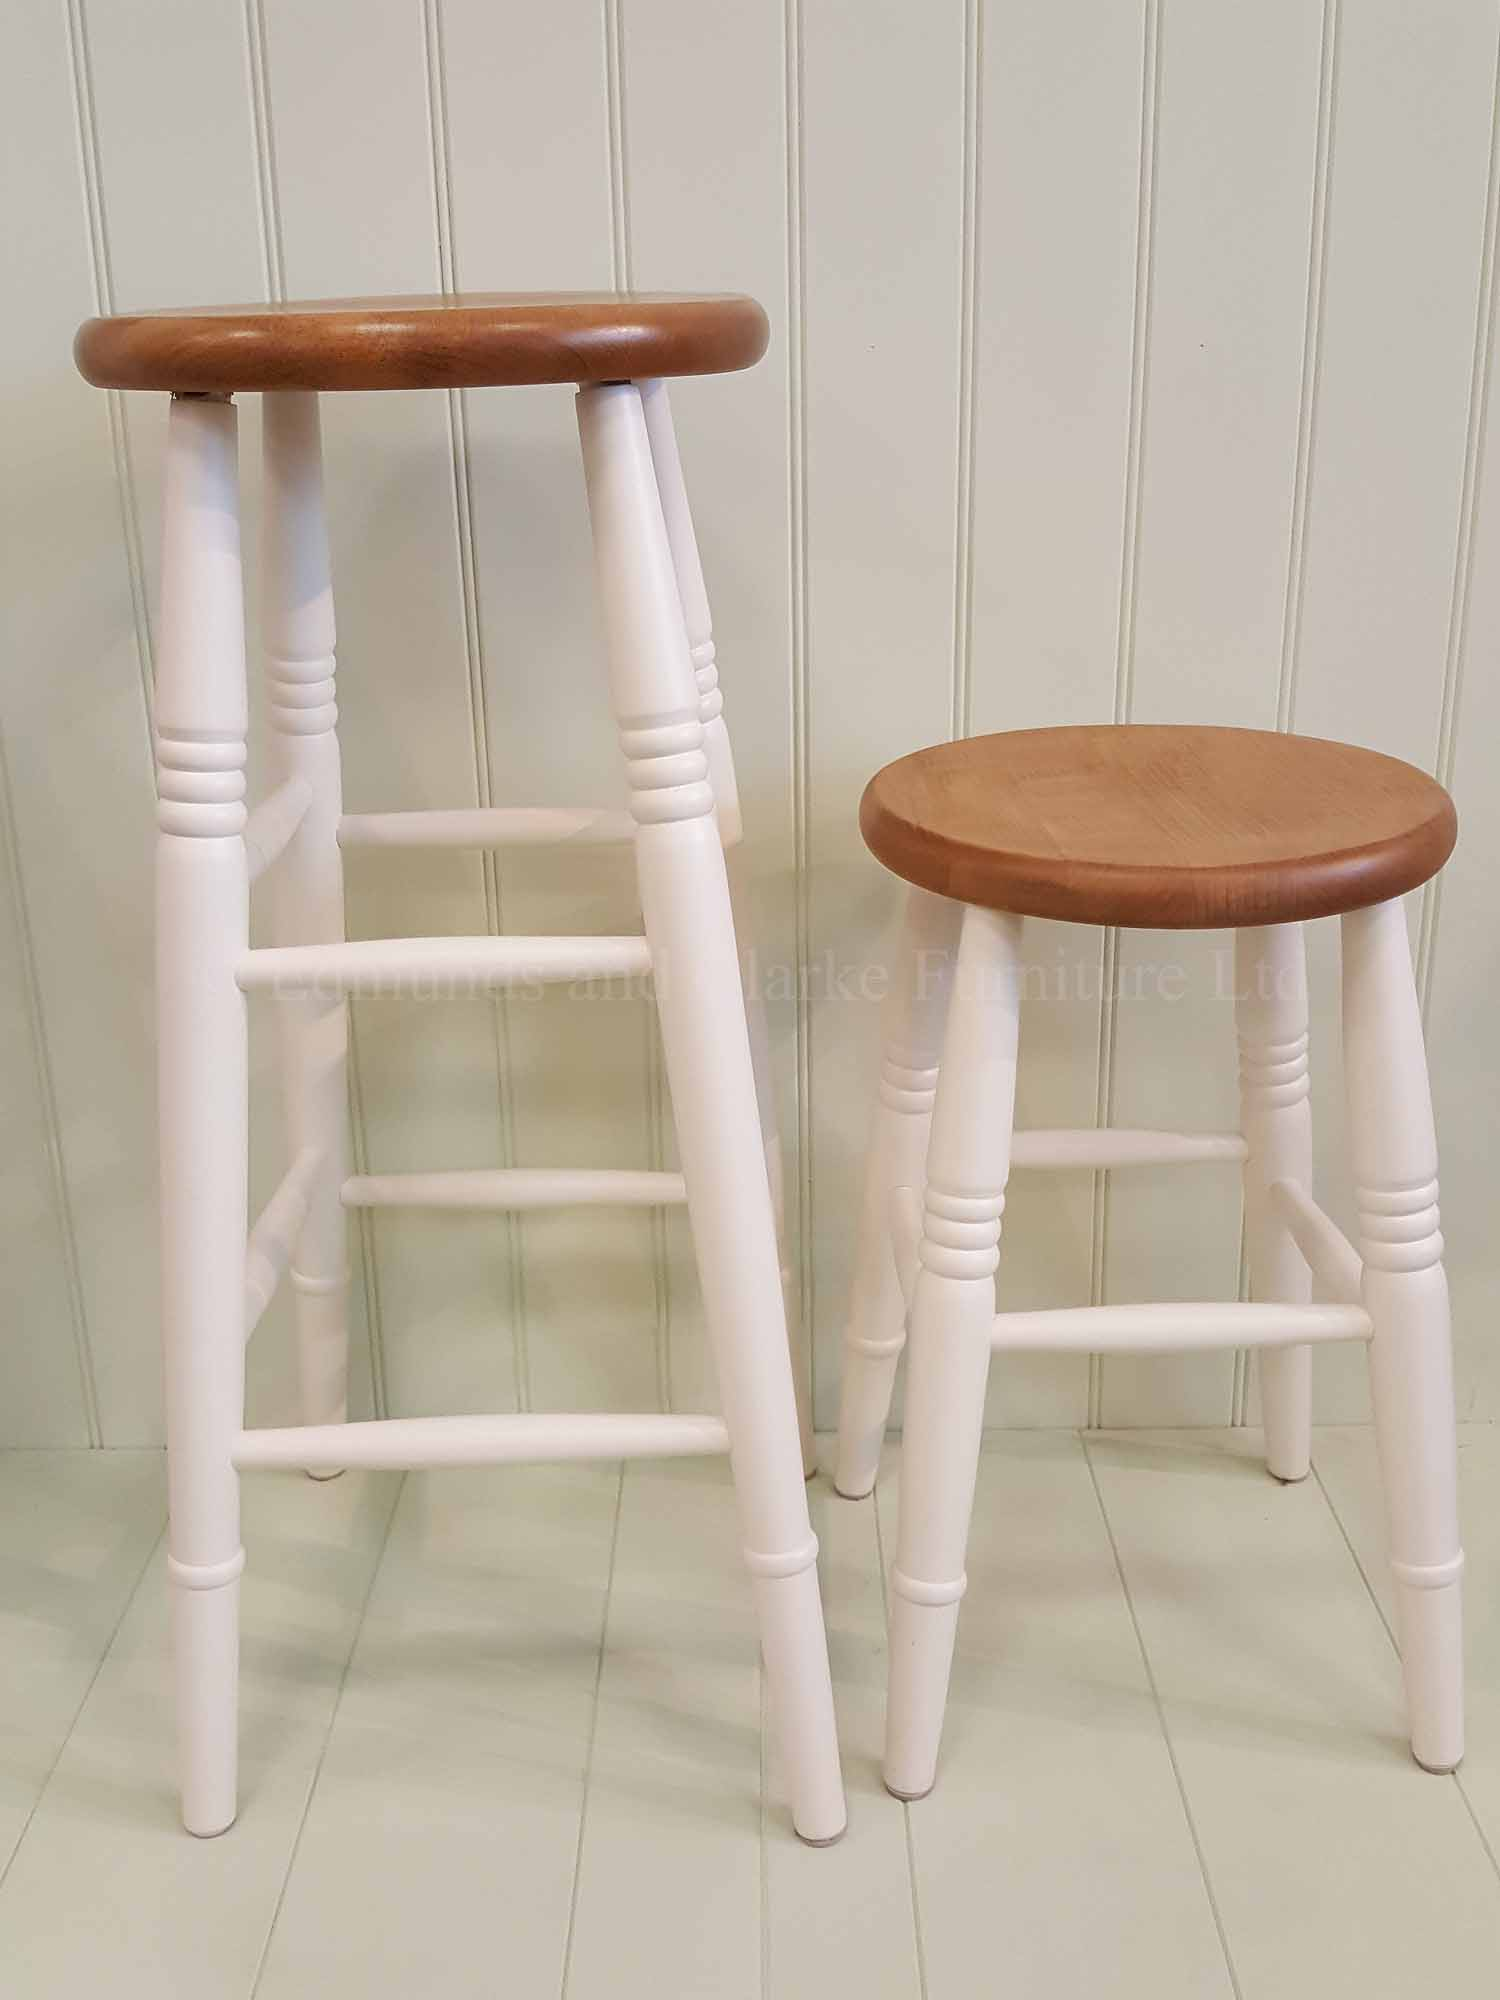 High and low farmhouse stool painted